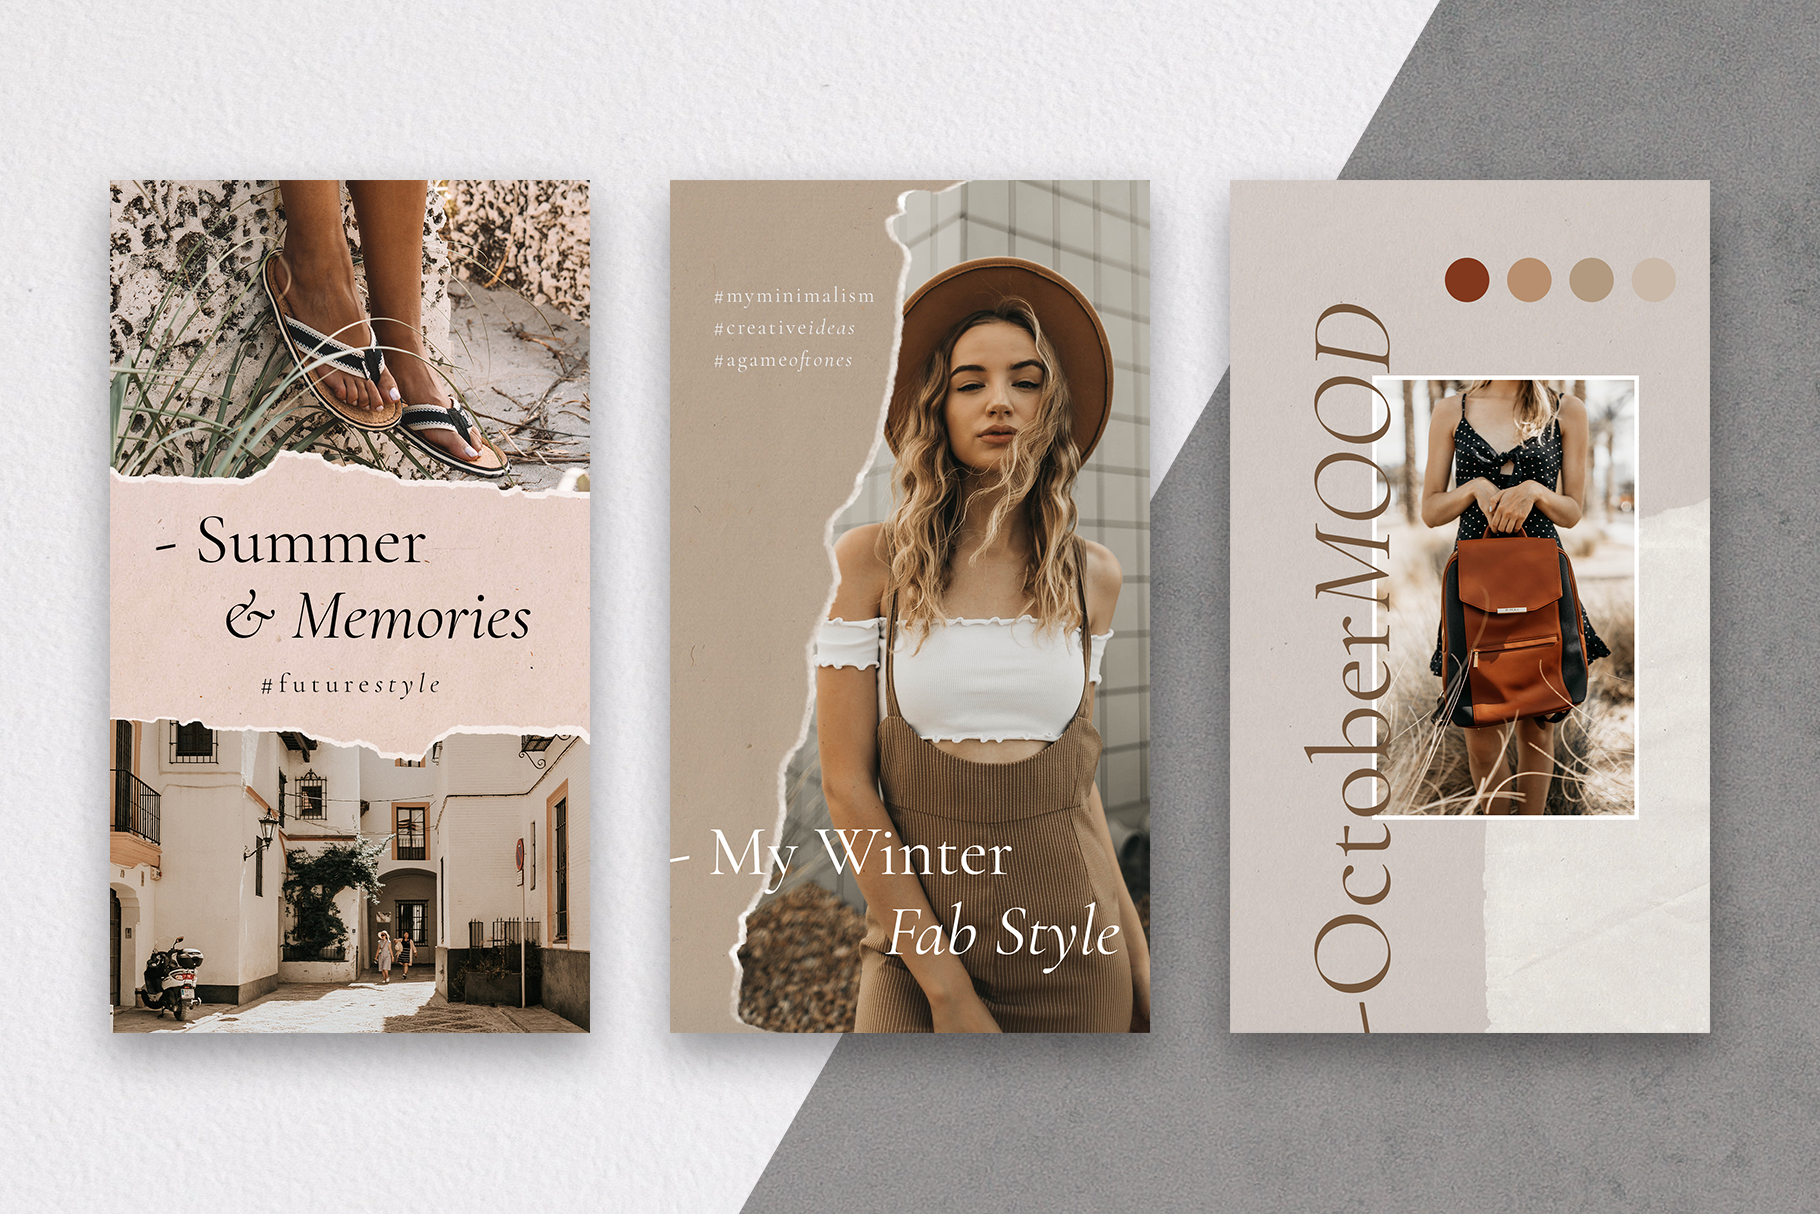 #InstaBabe - Creative & Modern Instagram Story Templates example image 10